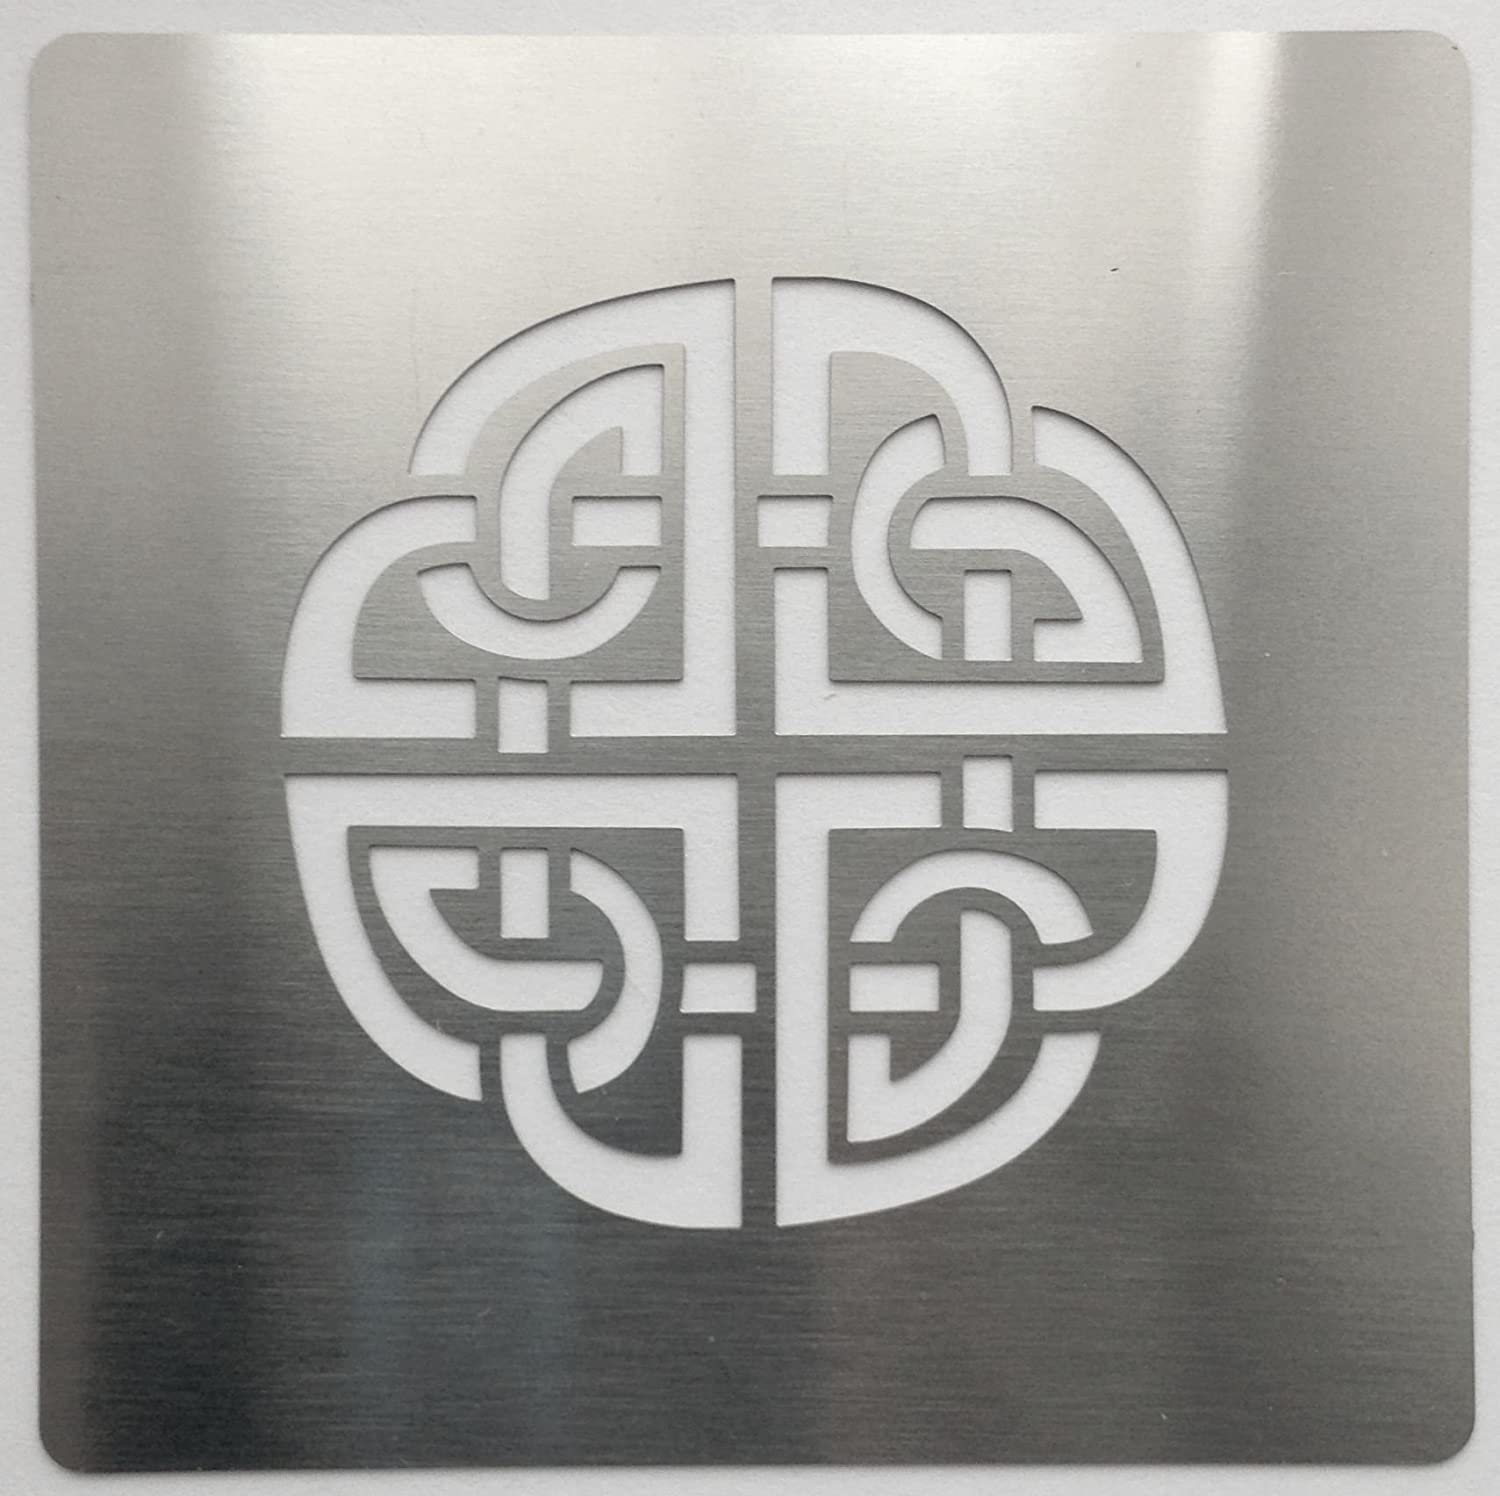 Metal Monkey Celtic Knot Stainless Steel Stencil 4cm SET of 4 (A,B,C,D)